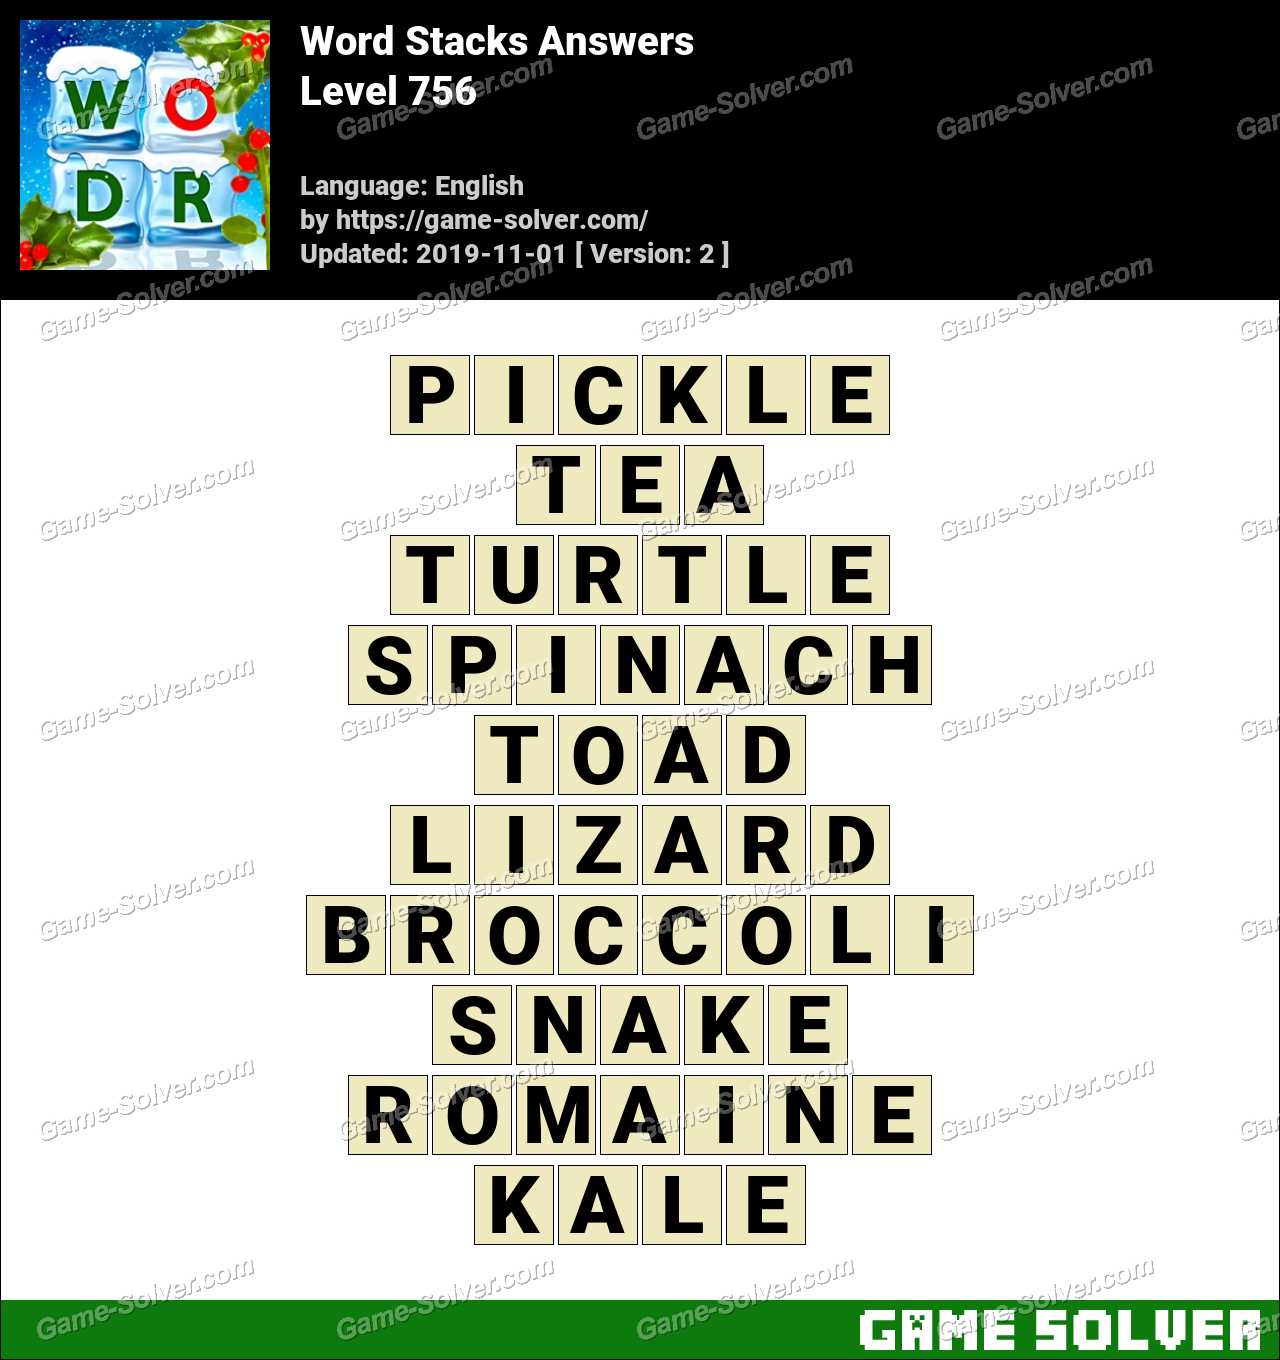 Word Stacks Level 756 Answers